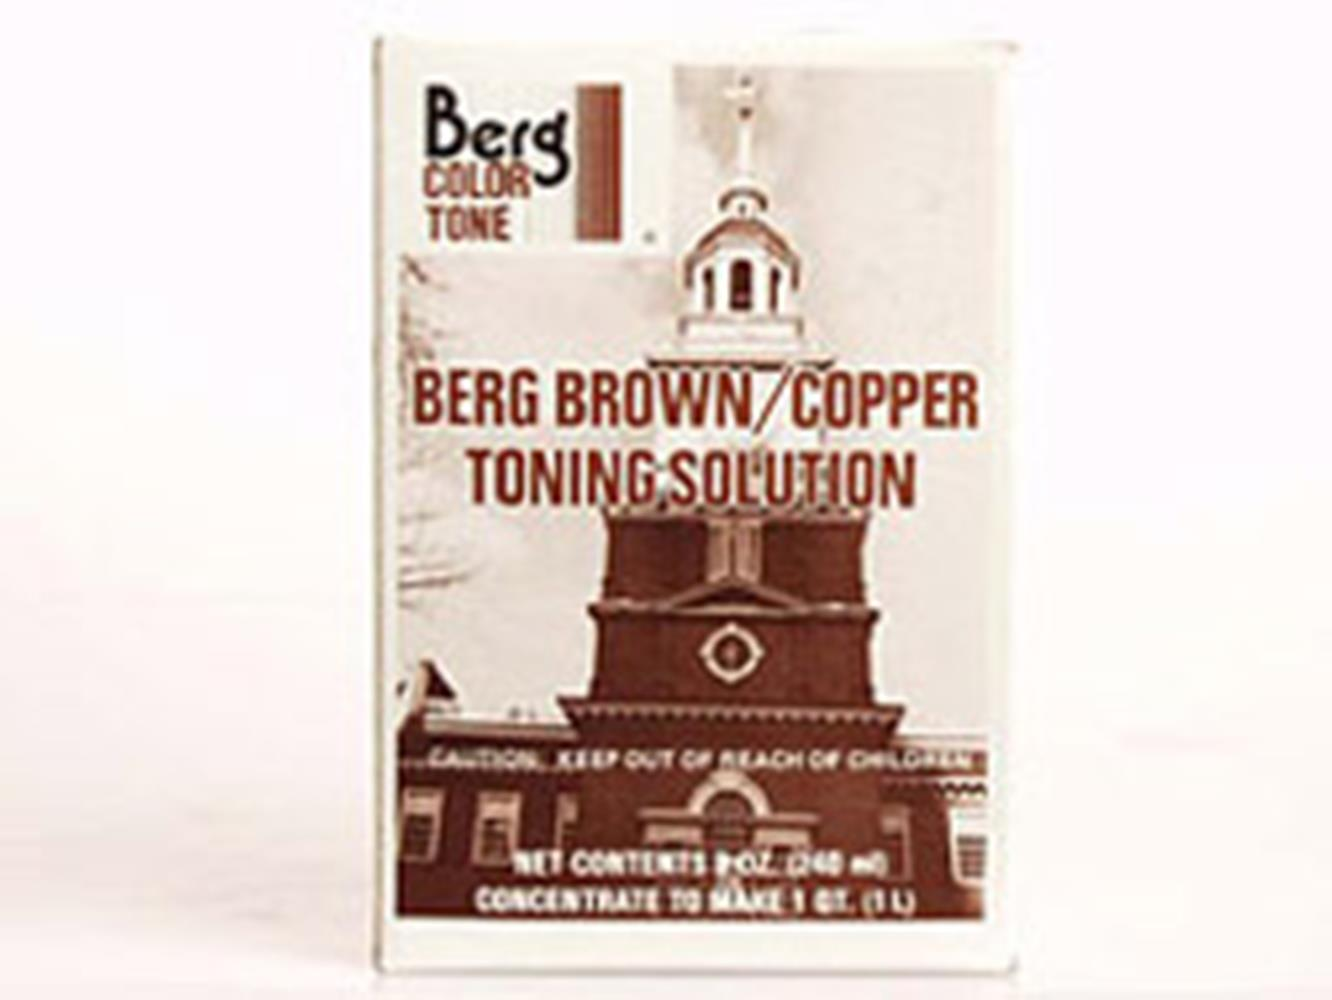 BERG BROWN/COPPER TONER